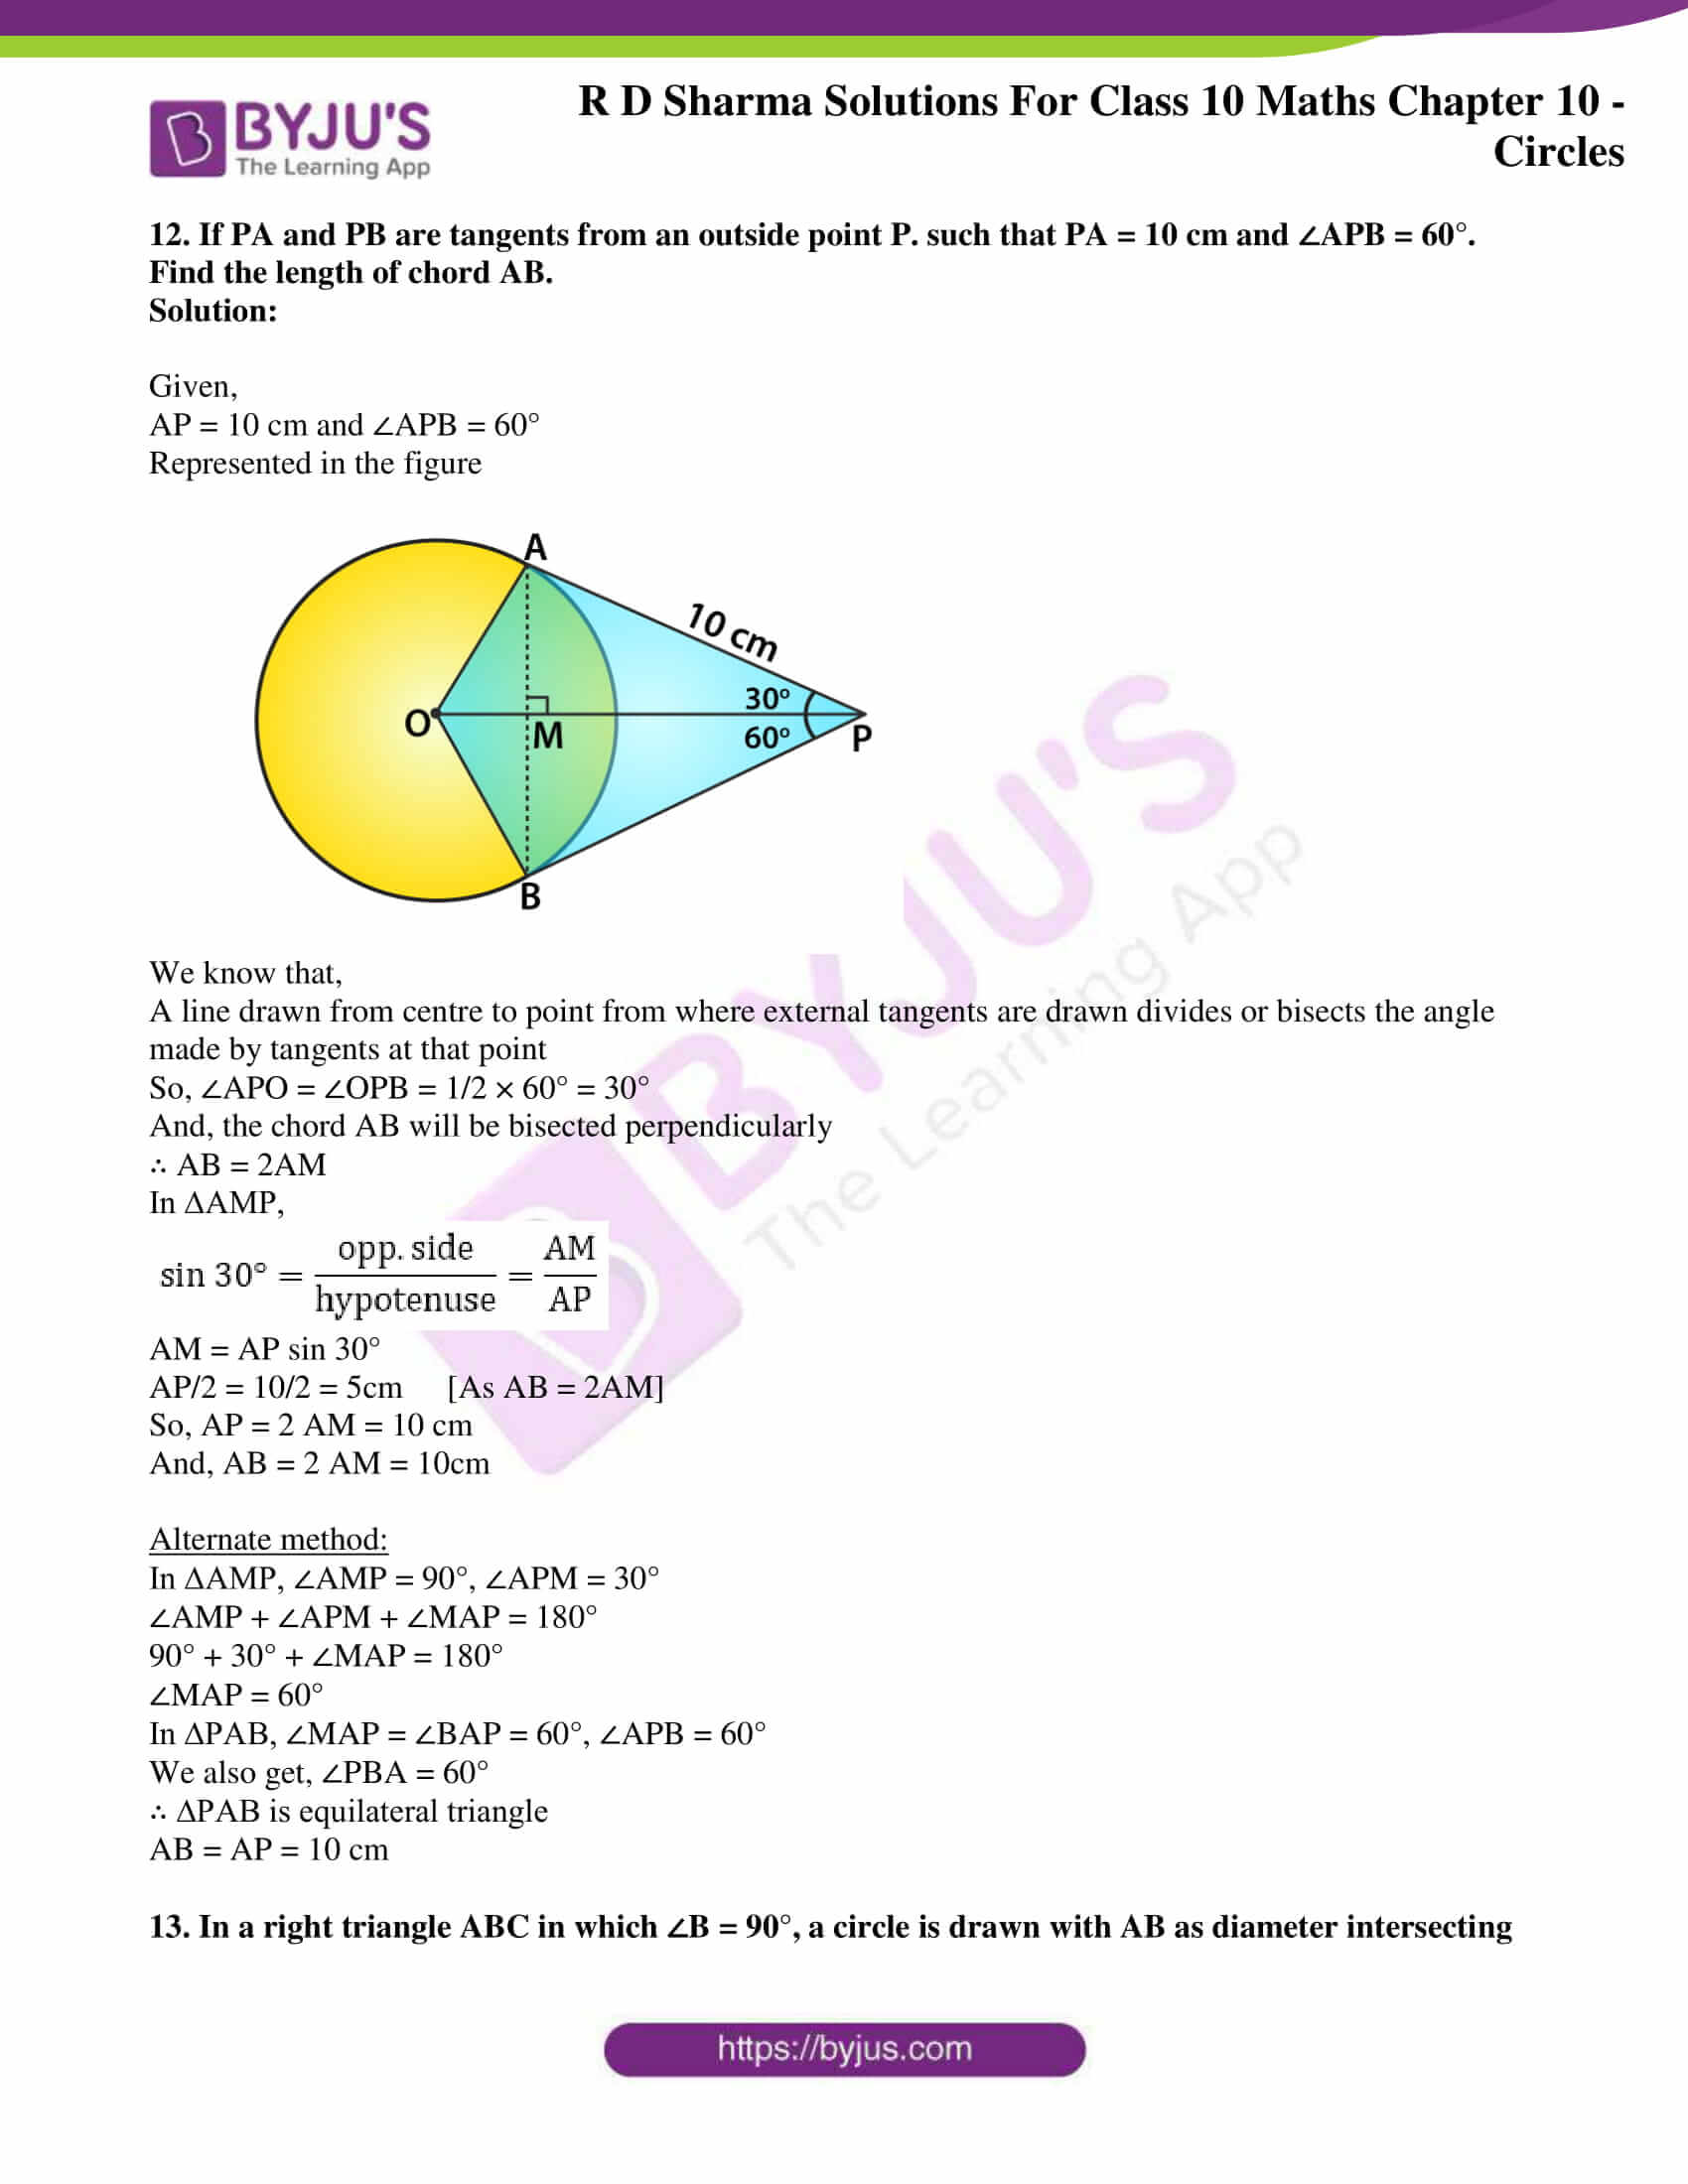 rd sharma class 10 chapter 10 circles solutions exercise 2 08